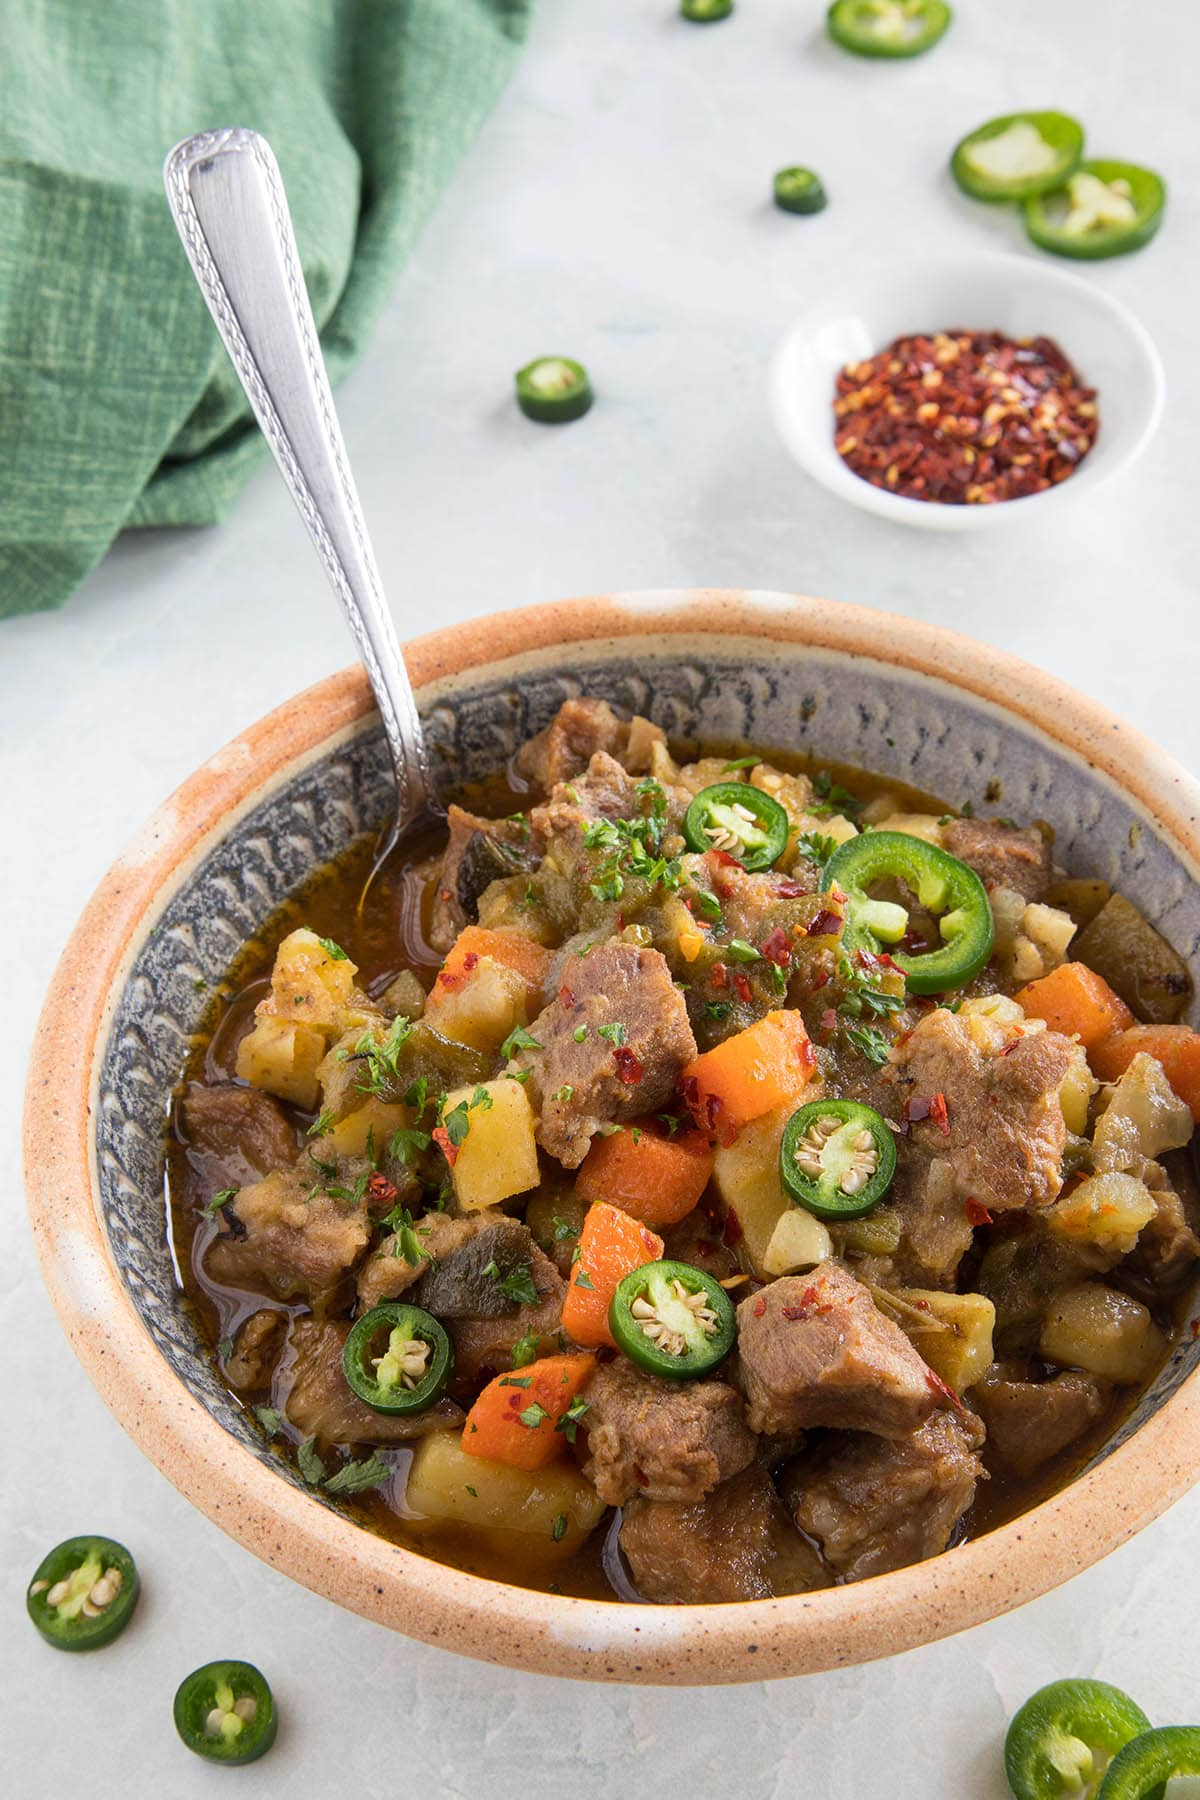 Green Chili Stew with Pork